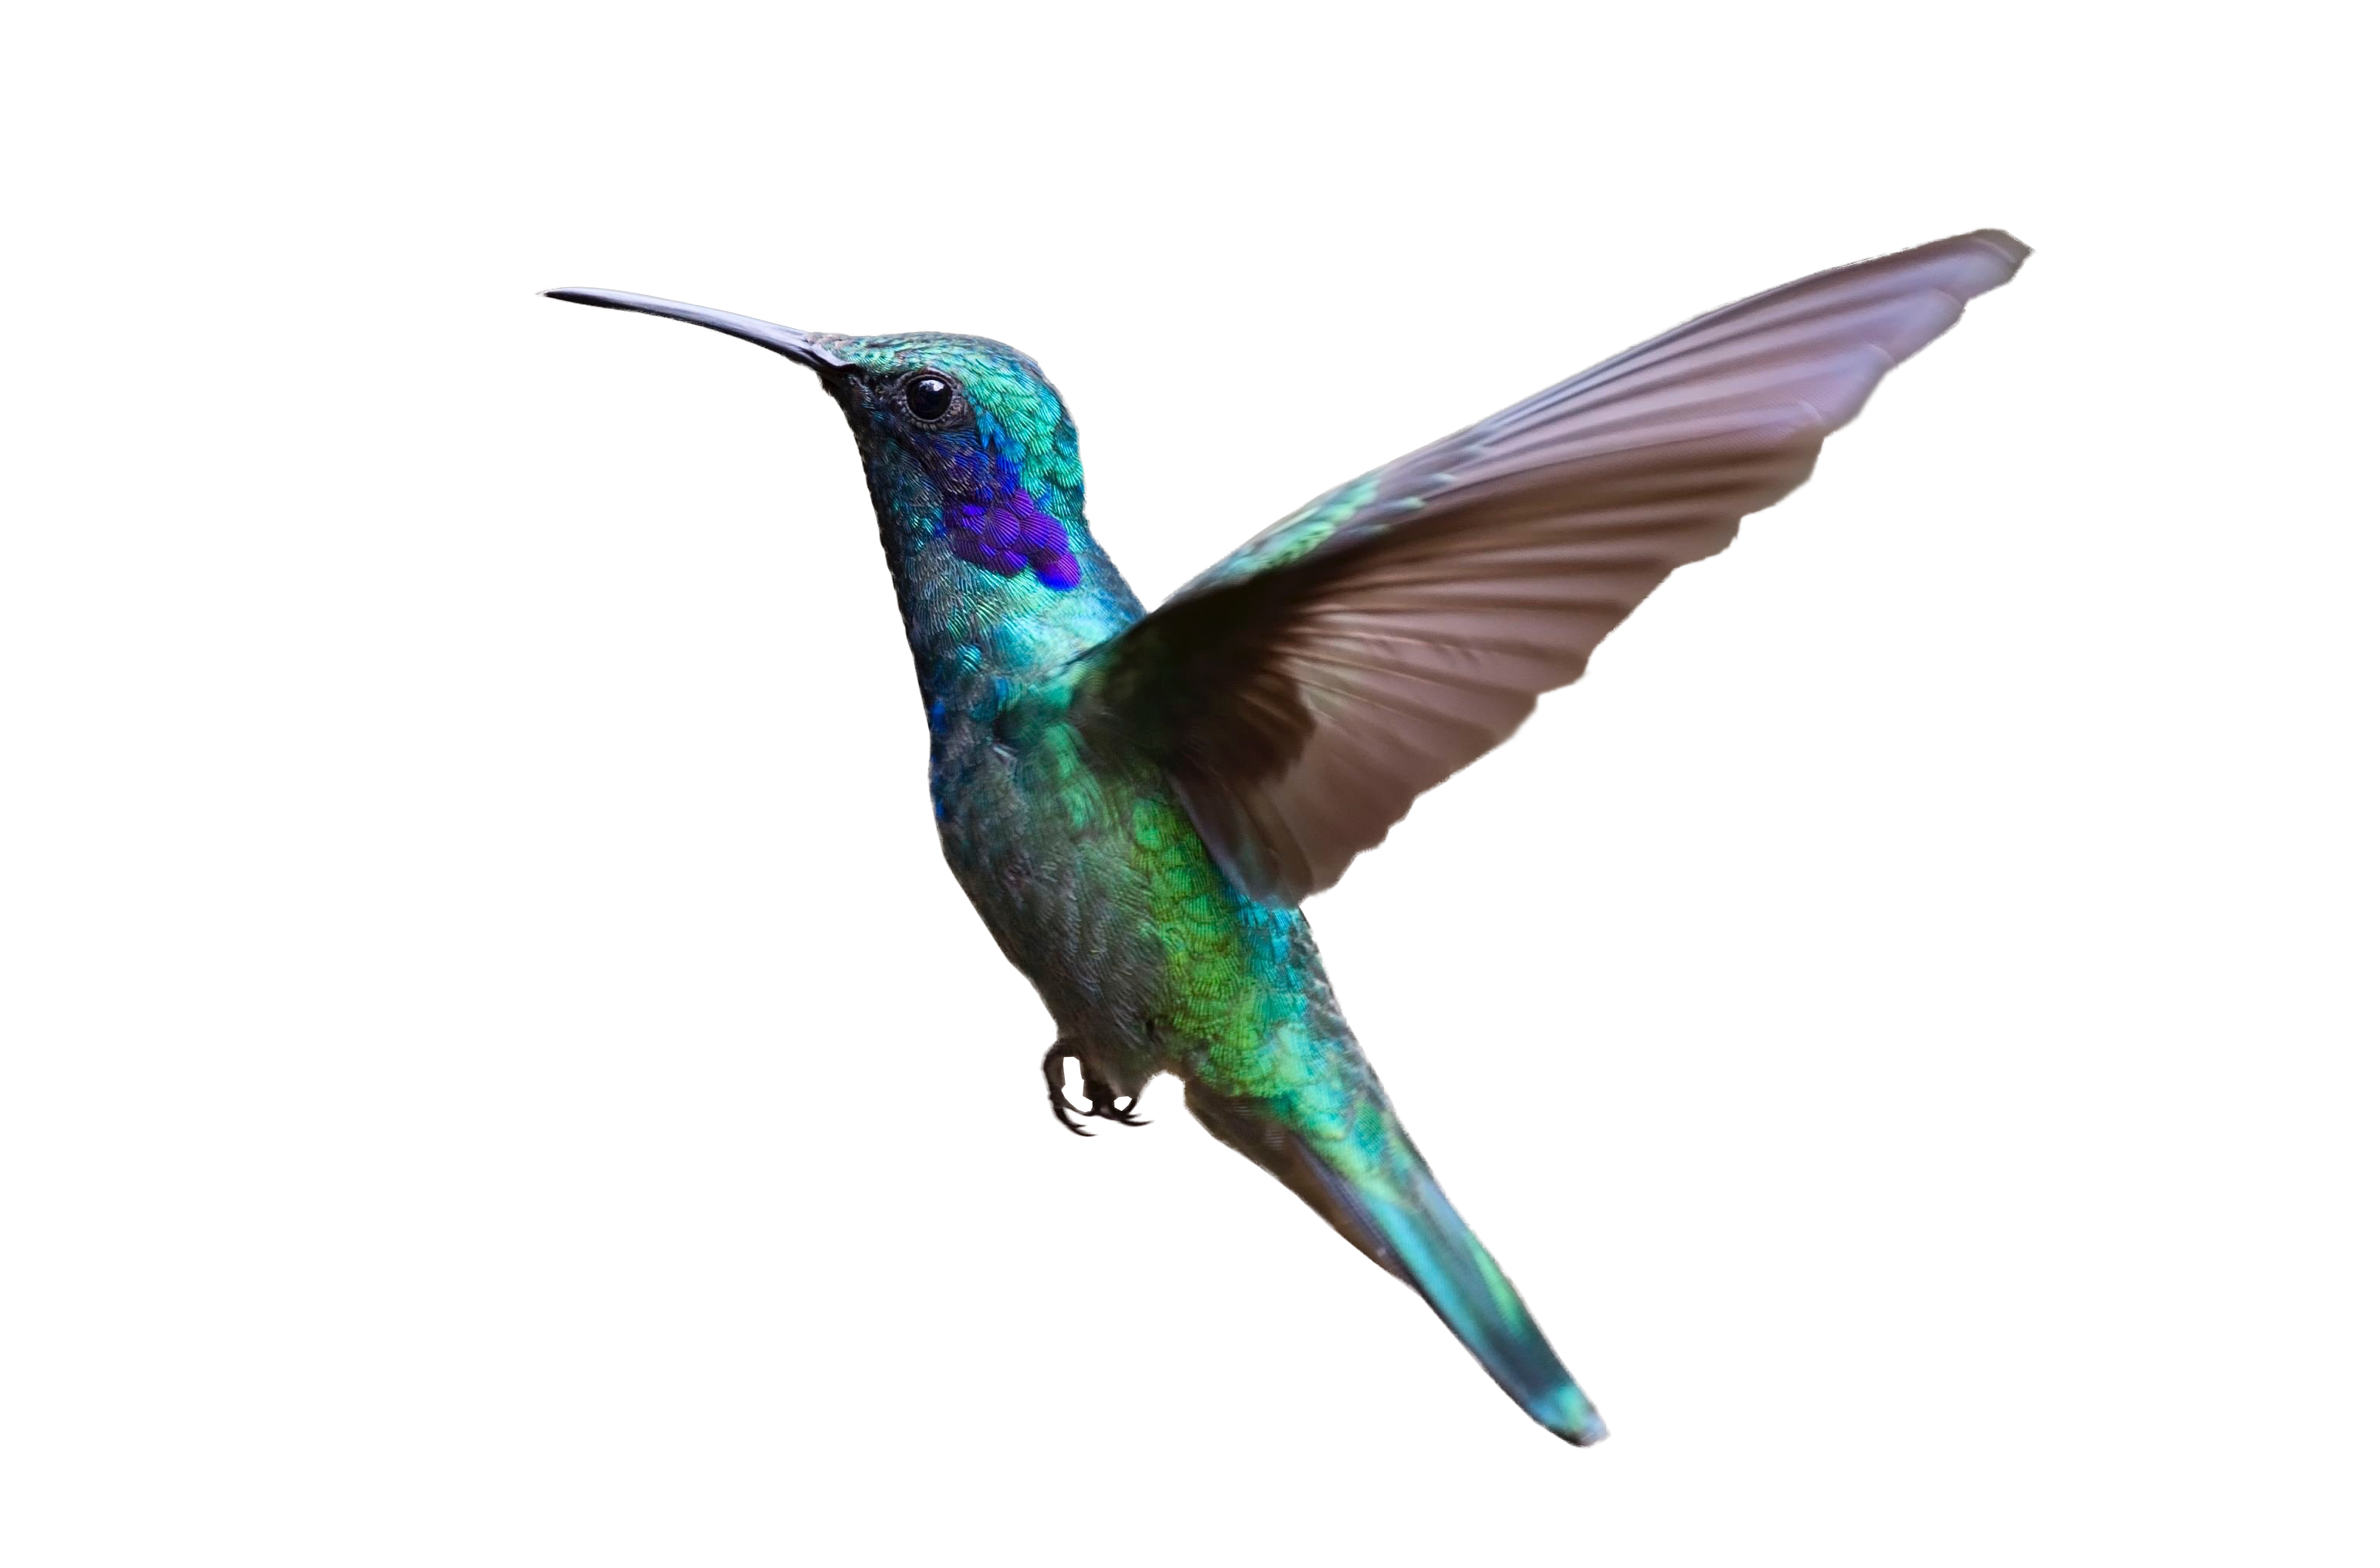 Bird flying png. Colorful hummingbird image purepng